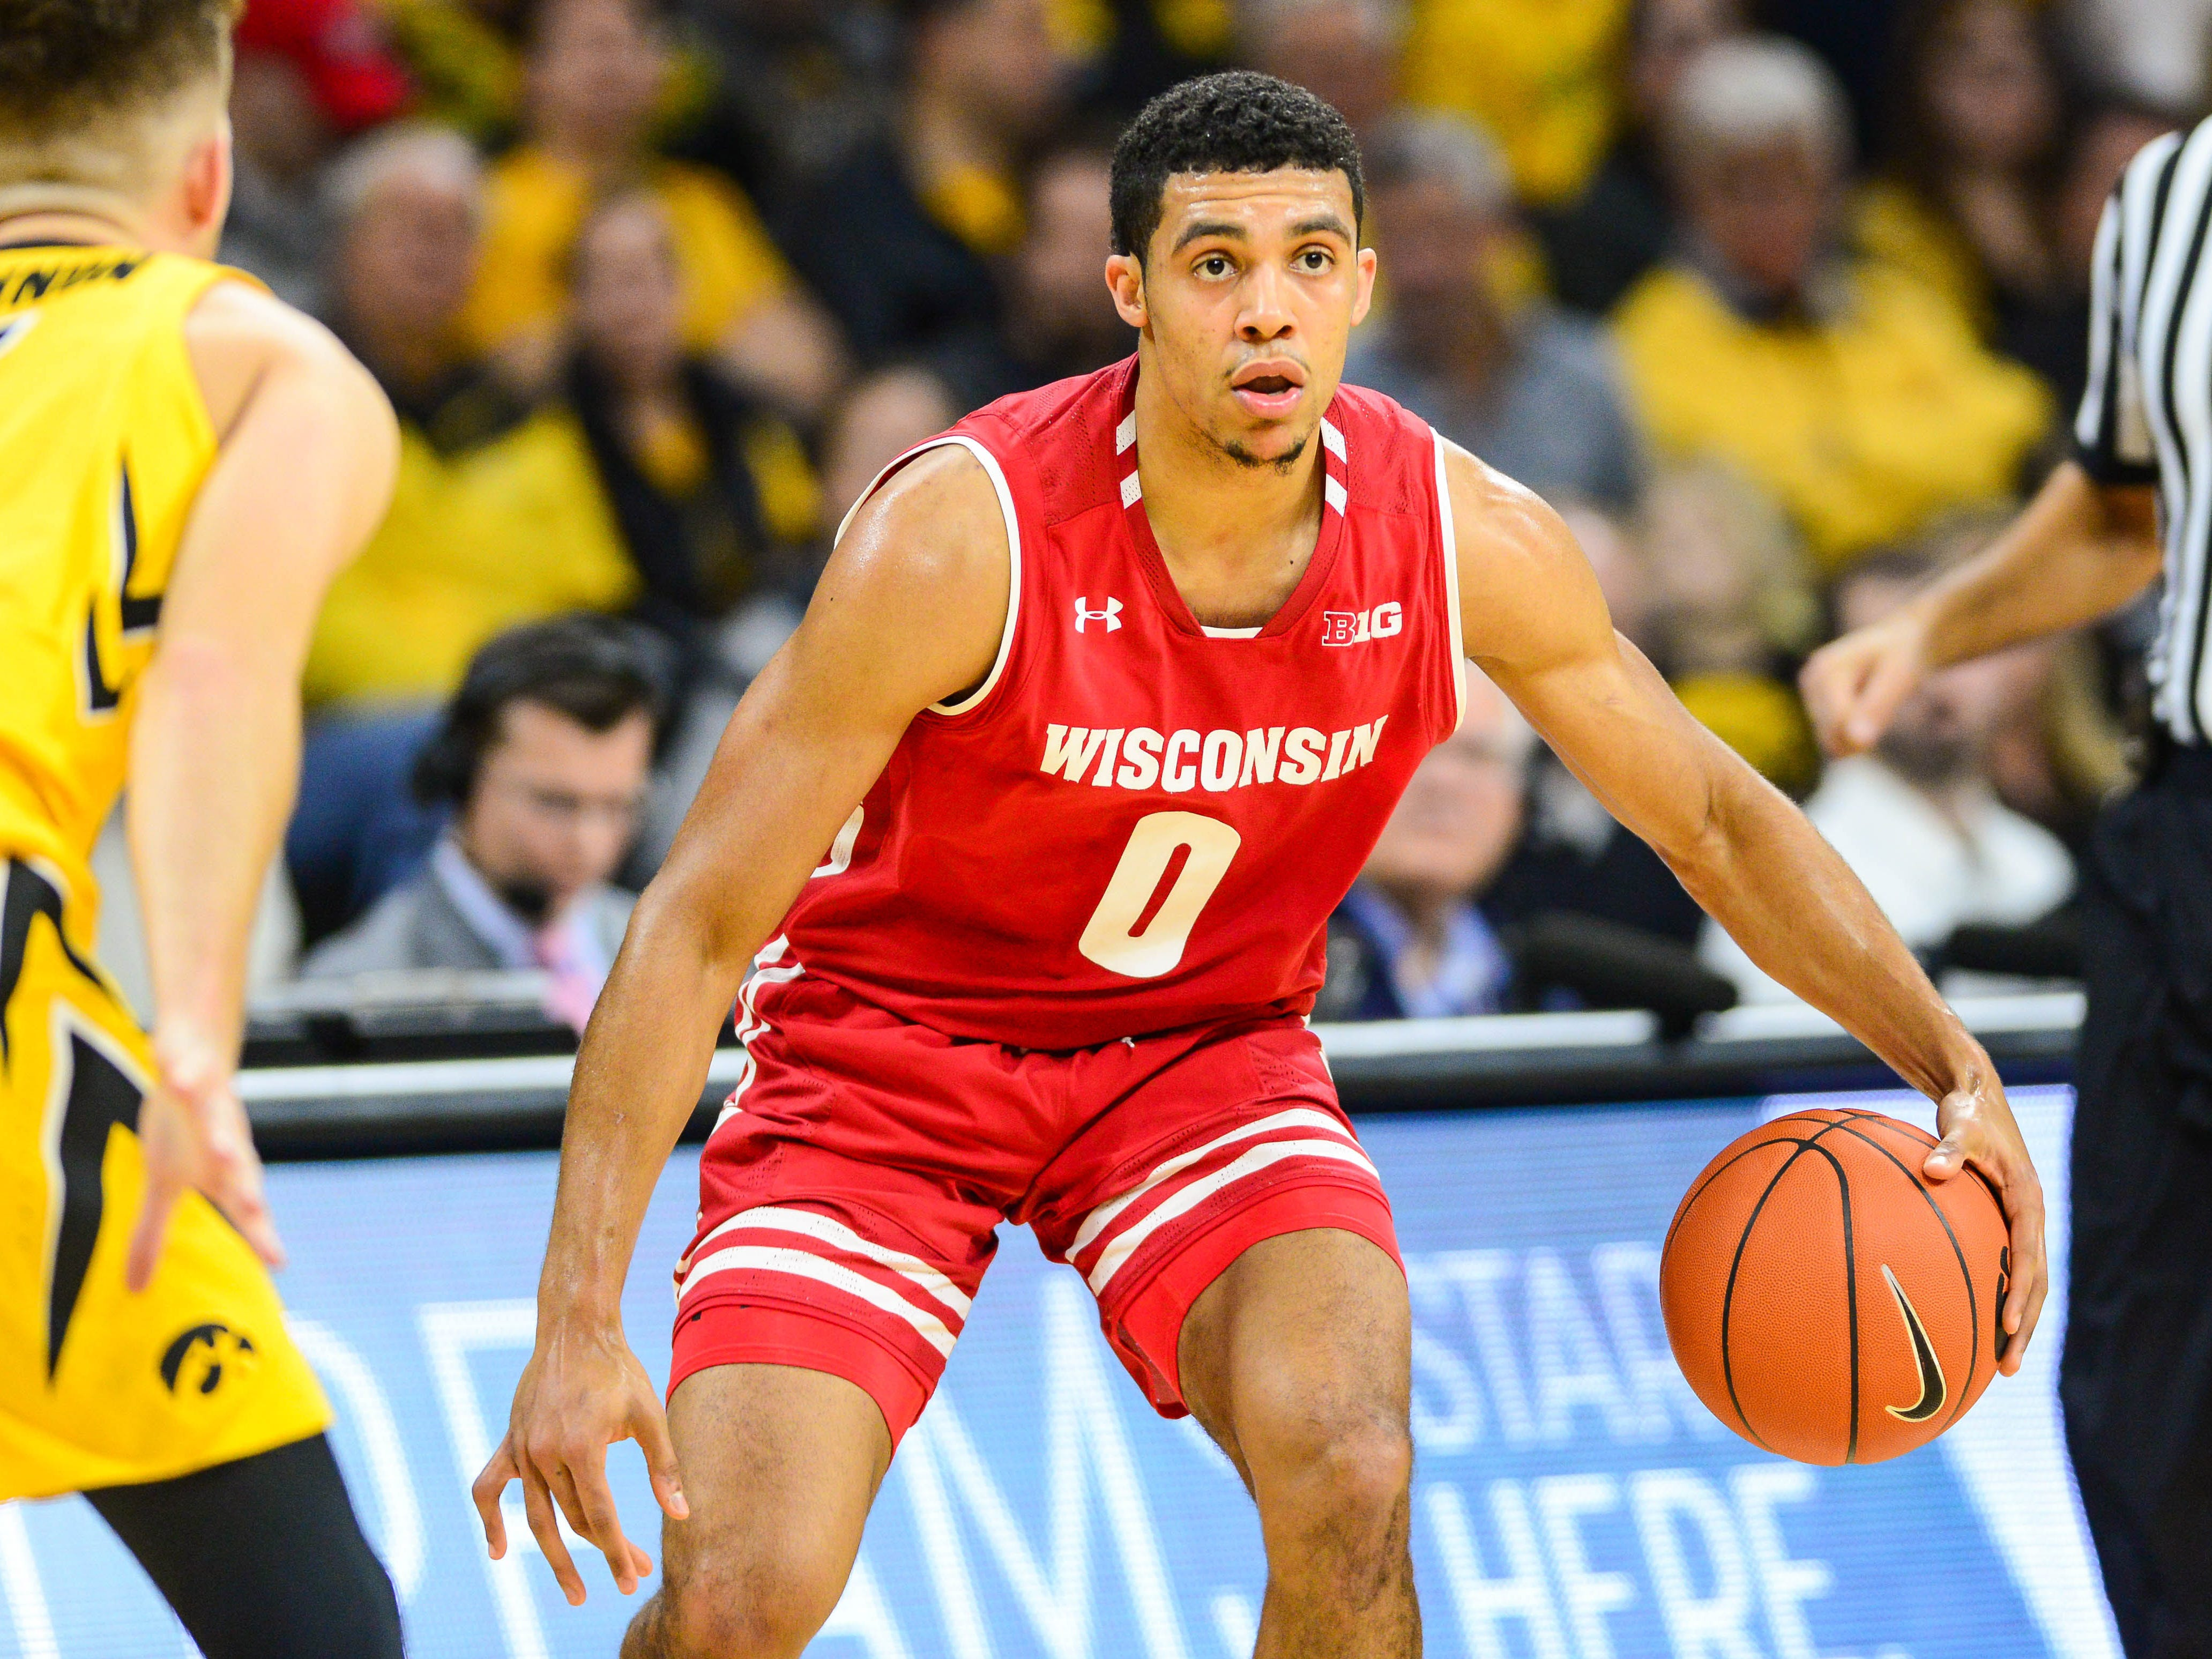 UW point guard D'Mitrik Trice surveys the court during the first half of the Badgers' game against Iowa on Friday night.